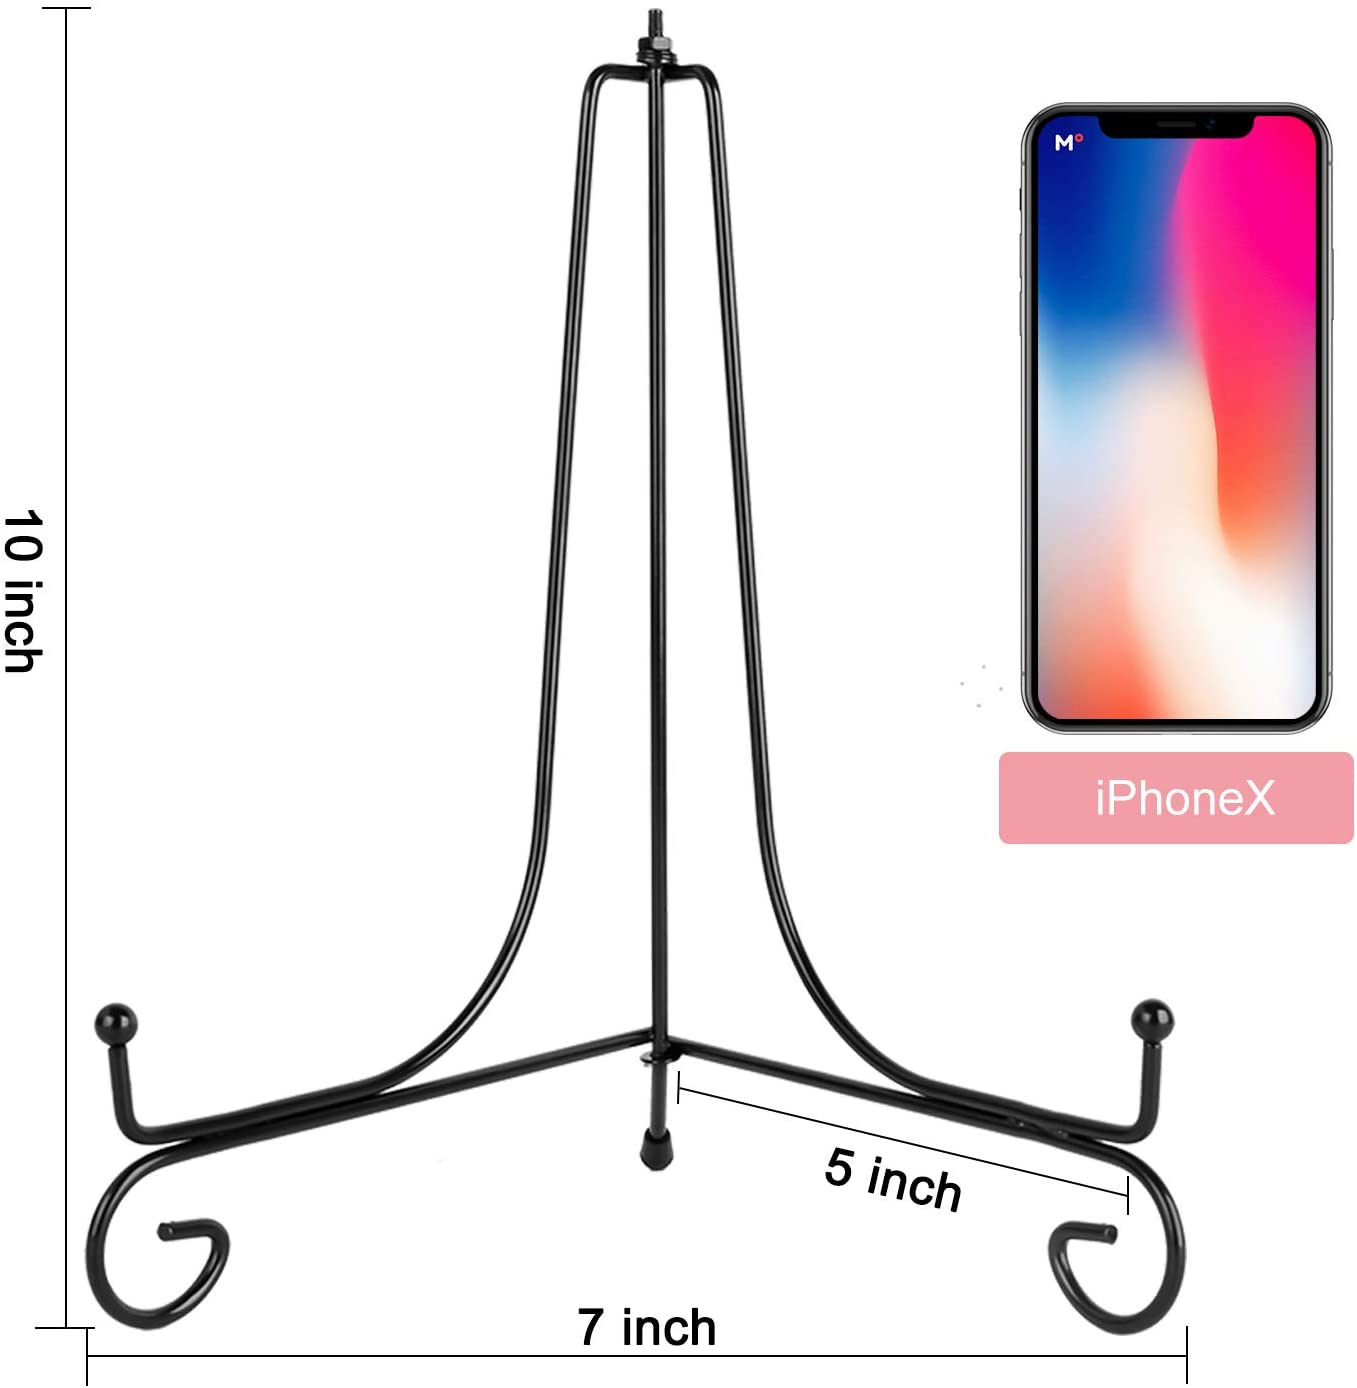 Book Display Stand Easel Display Stand Picture Frame Holder Stand Teamkio 2 Pack Improved Anti-Slip 4 Inch Plate Holder Display Stand